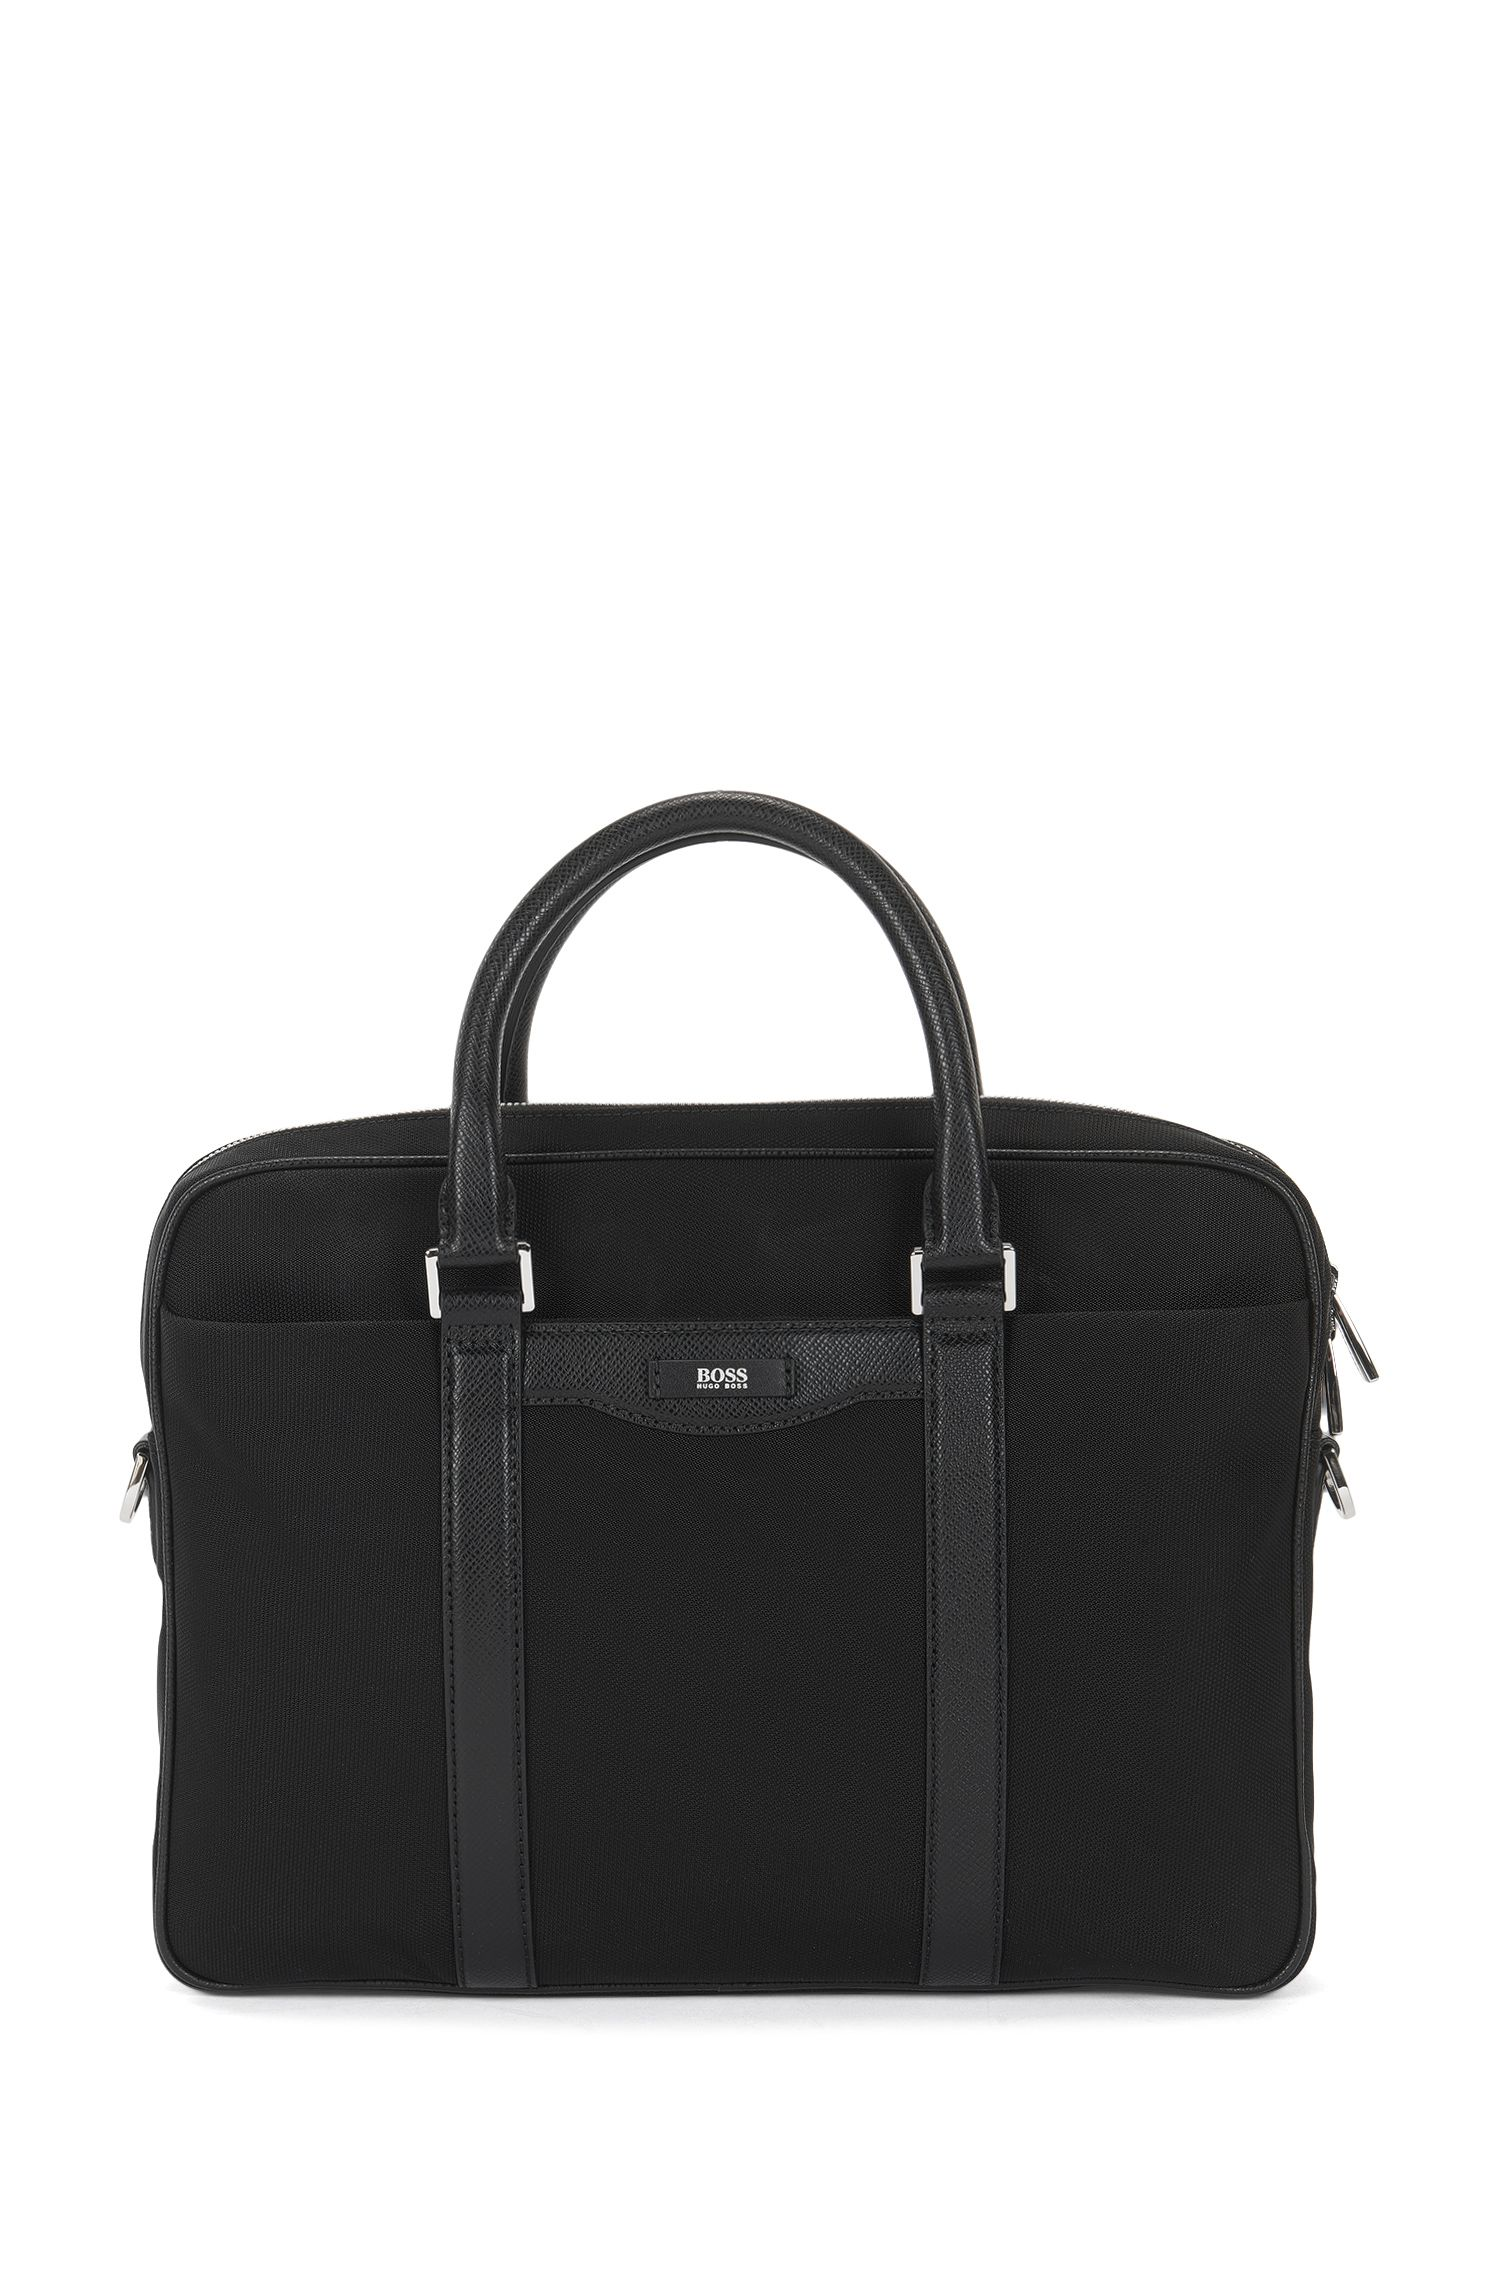 Workbag uit de Signature Collection, met leren garneersels